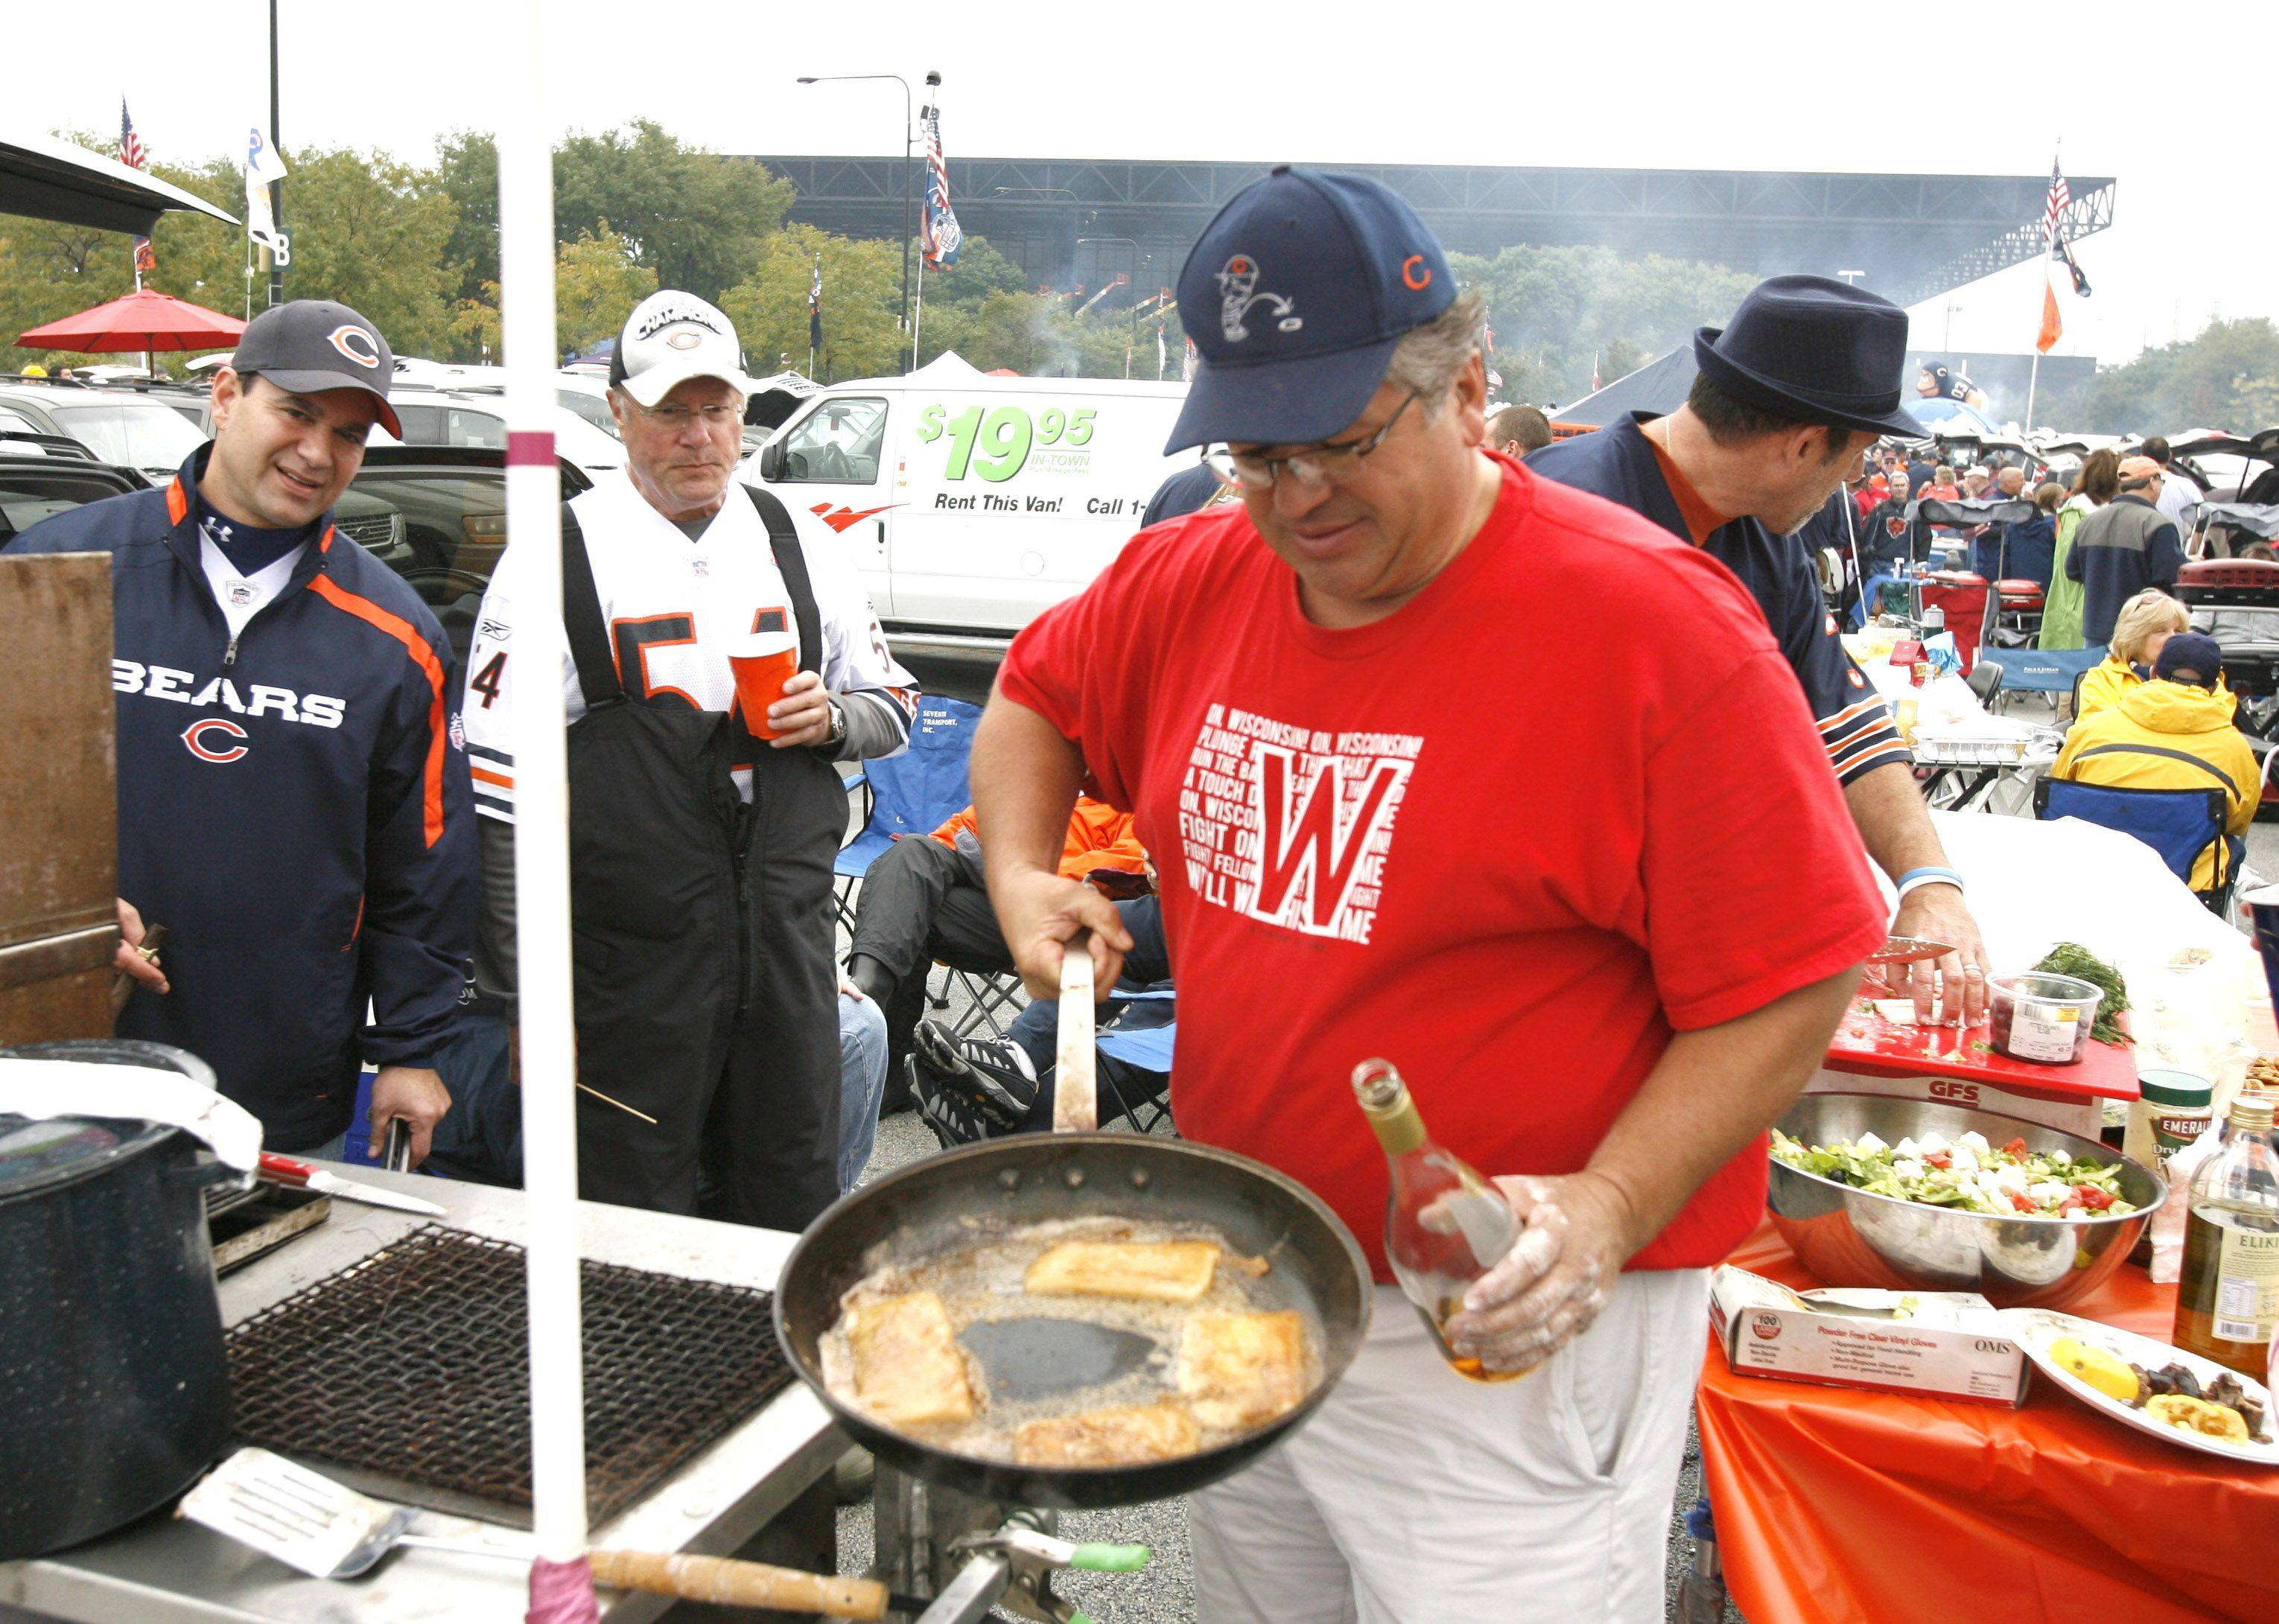 Pete Stamos of Palos Heights cooks flaming cheese during Chicago Bears and Green Bay Packers pregame tailgate.